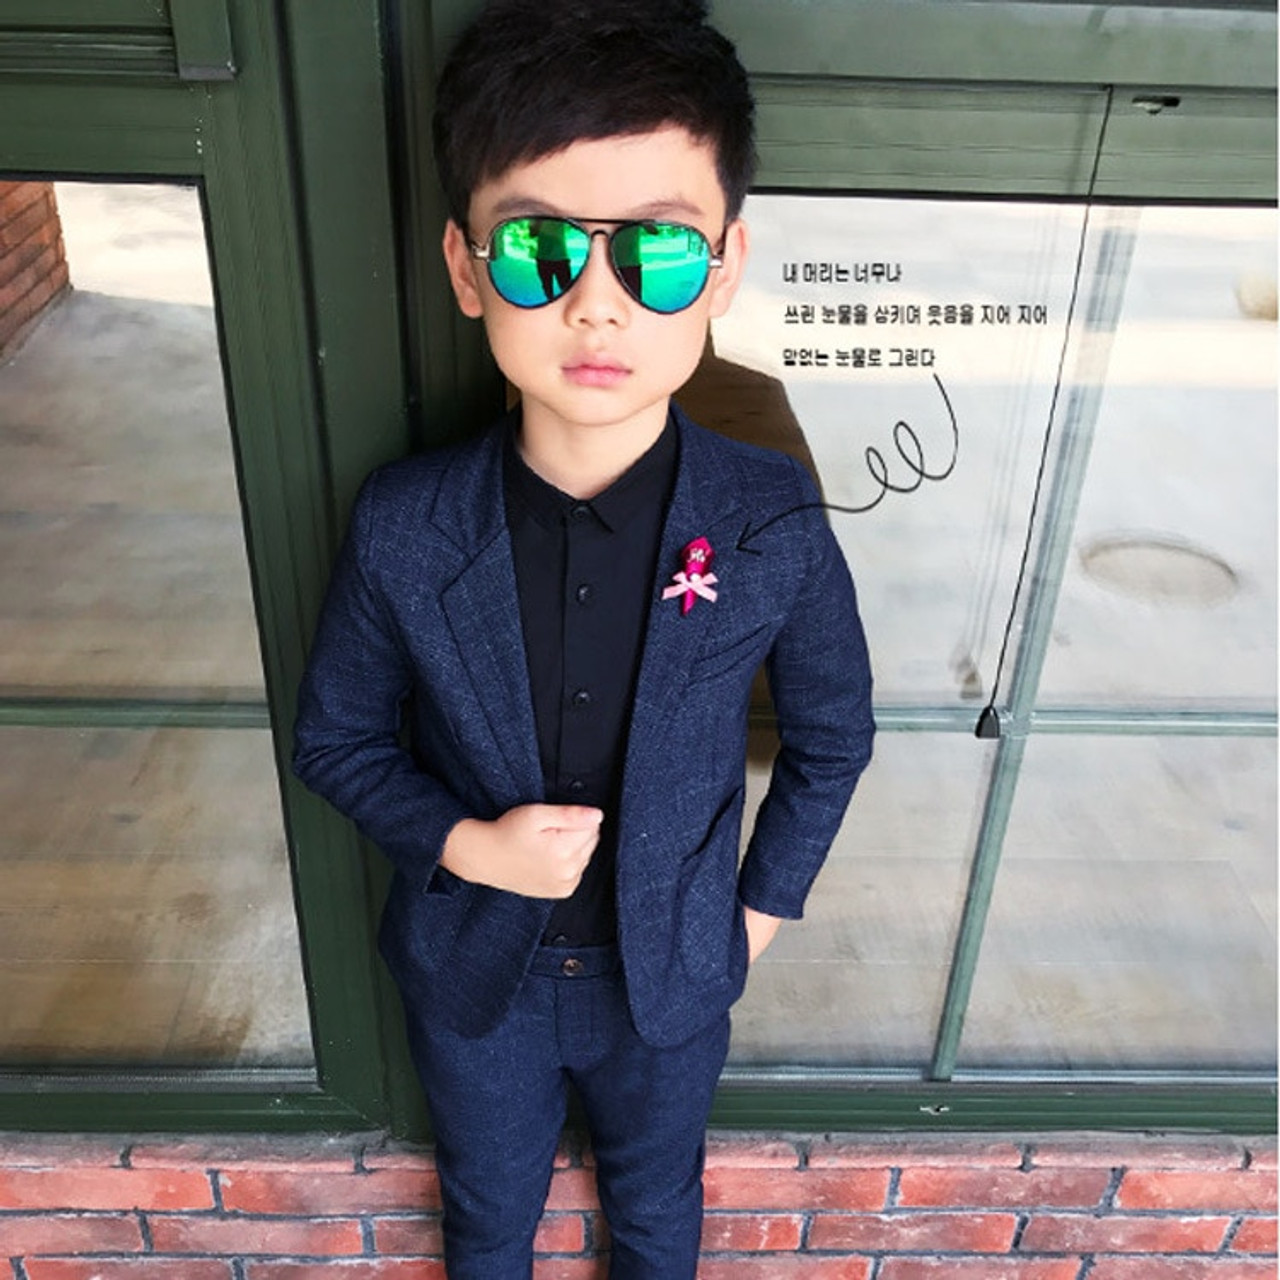 94dadcc073c64 ... Kids Blazer Baby Boys Suit Jackets 2018 Spring Cotton Coat Pants 2  Piece Boy Suits Formal ...